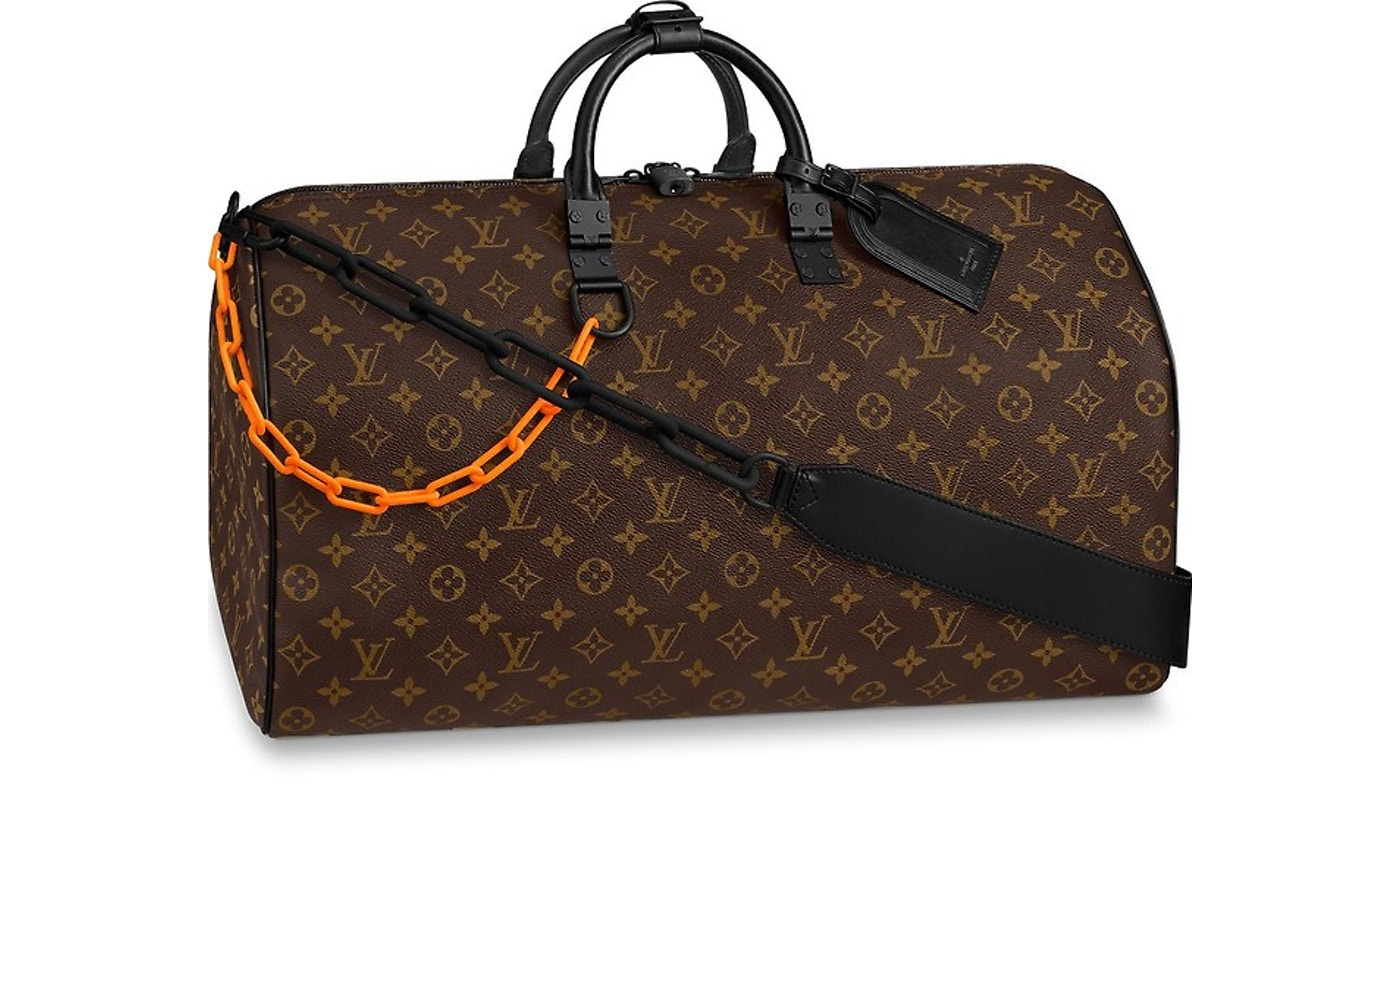 465edac3bea Louis Vuitton Keepall Bandouliere 50 Canvas Brown